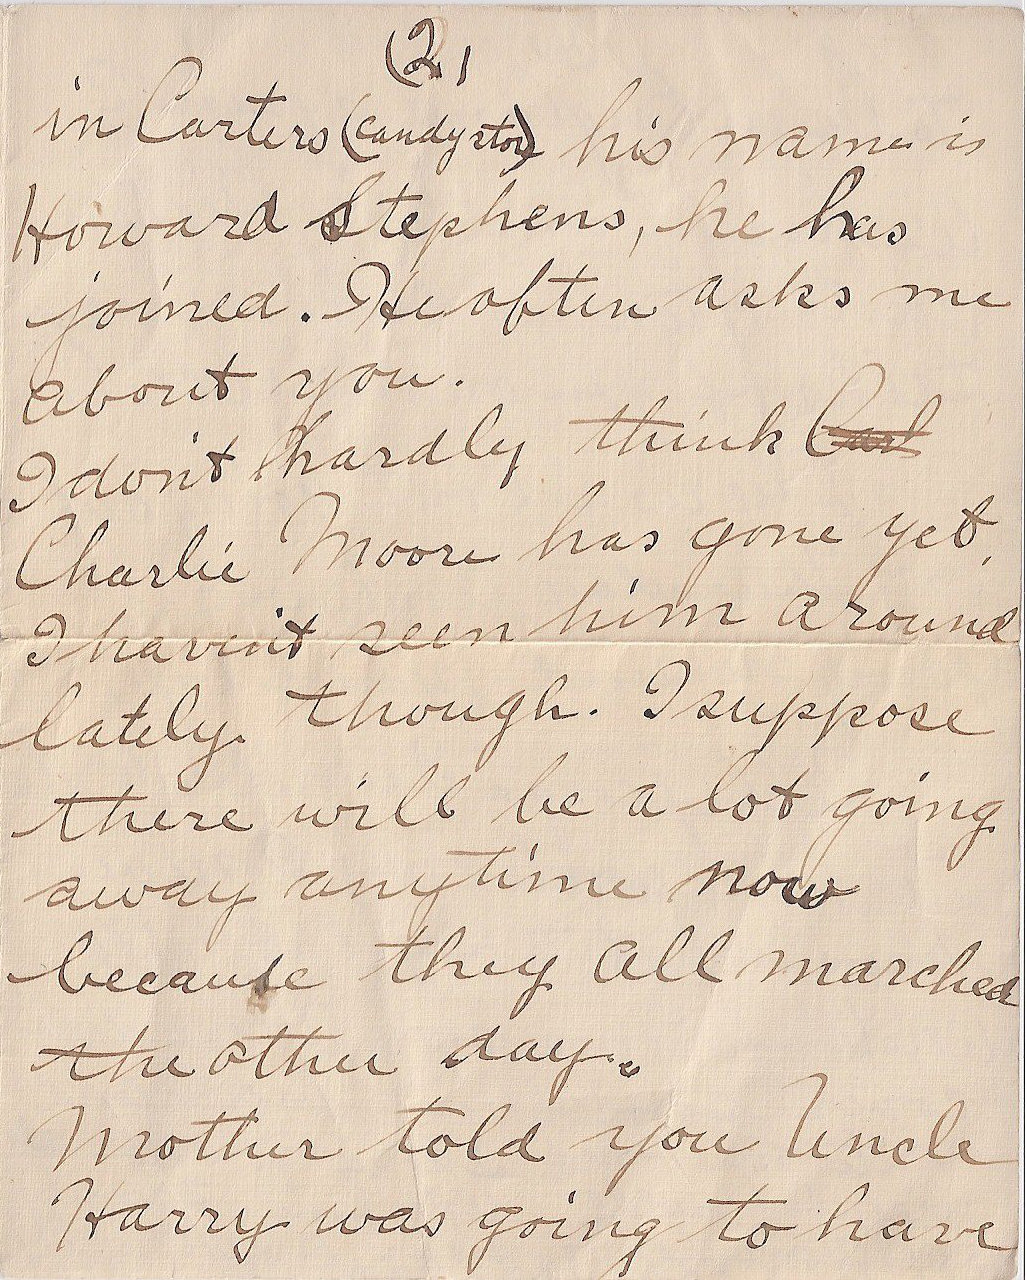 Letter to  FREDERICK CHARLES SWAIT– The second of four pages of a letter sent from my grandmother to Uncle Fred, returned to her because he was deceased.